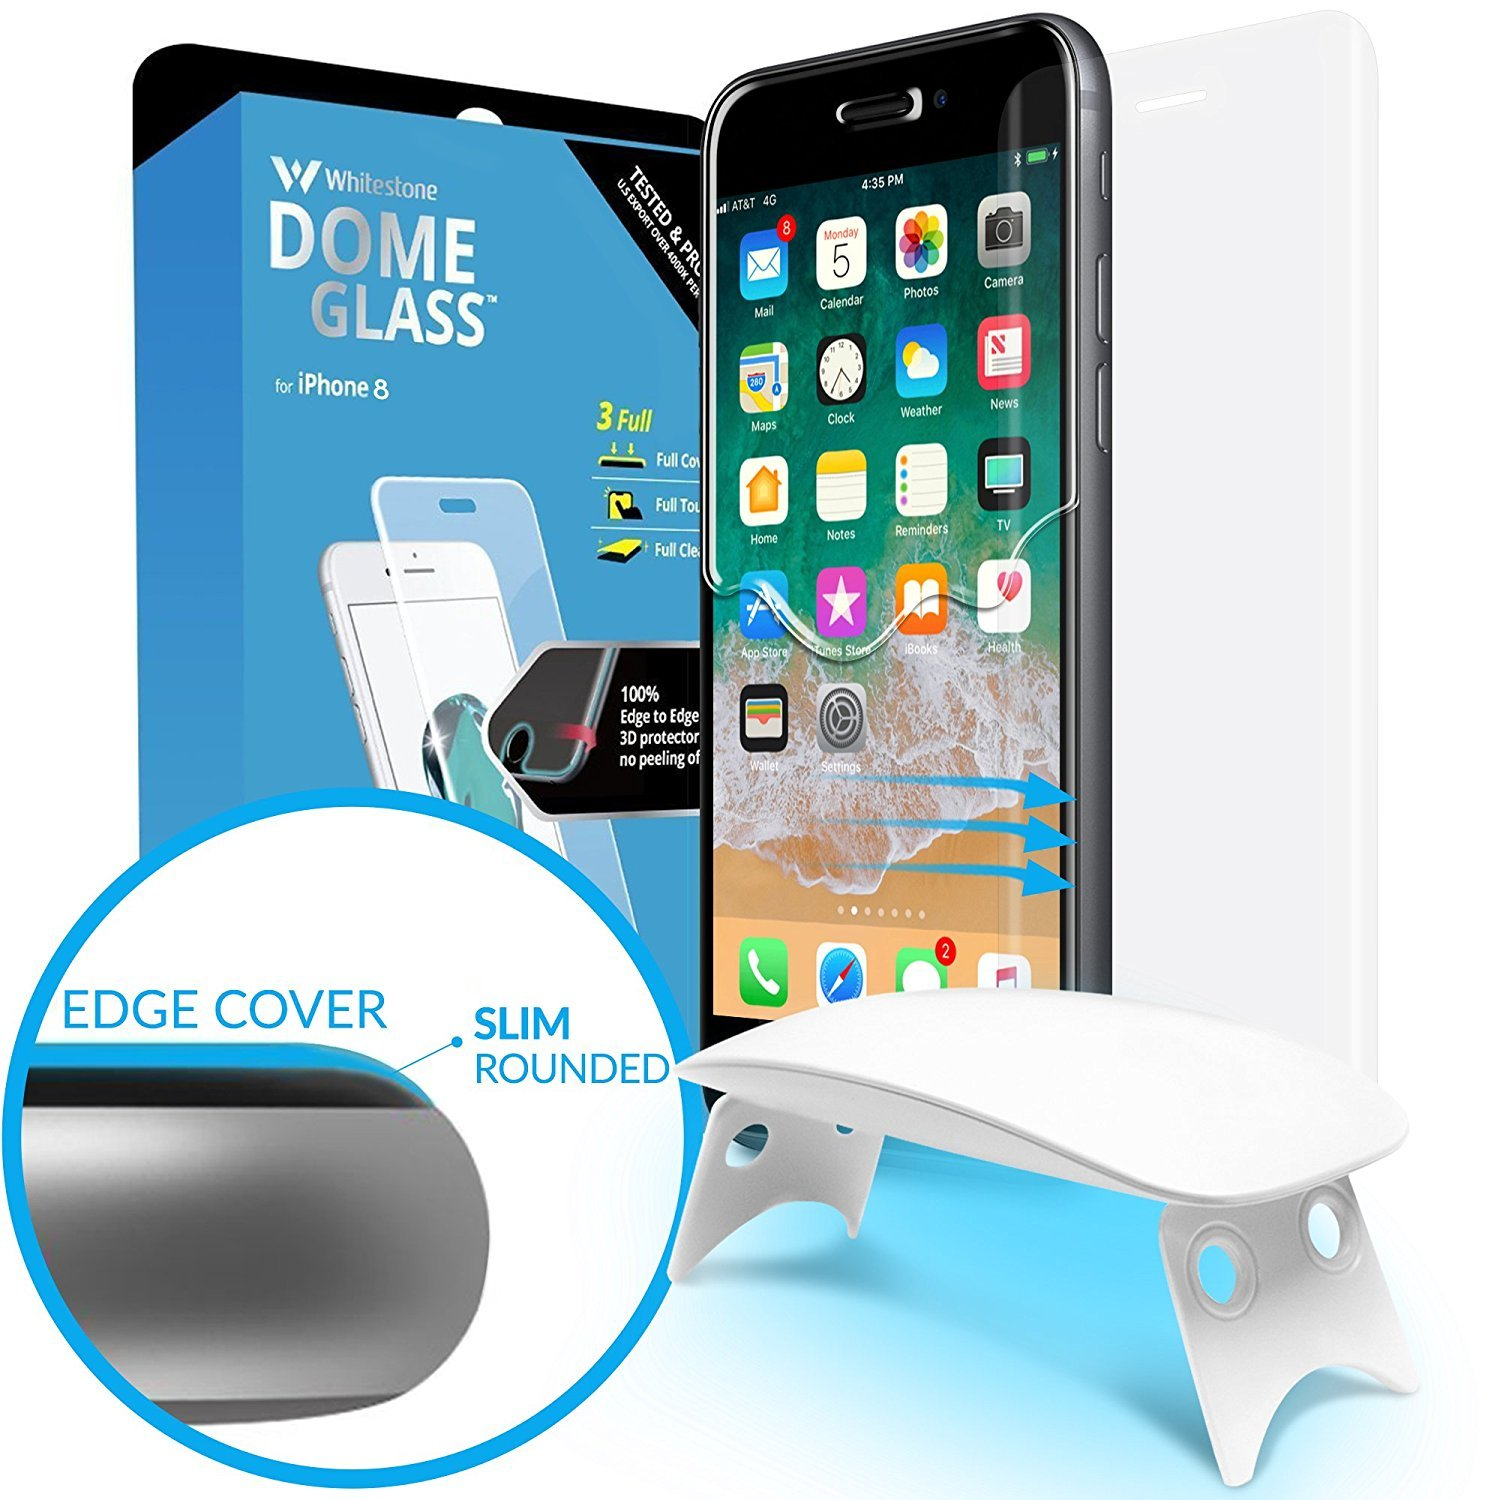 Dome Glass iPhone 8 Screen Protector Tempered Glass Shield, [Liquid Dispersion Tech] 2.5D Curved Full Coverage, Easy Install Kit and UV Light by Whitestone for Apple iPhone 8 (2017) / iPhone 7 (2016) by Dome Glass